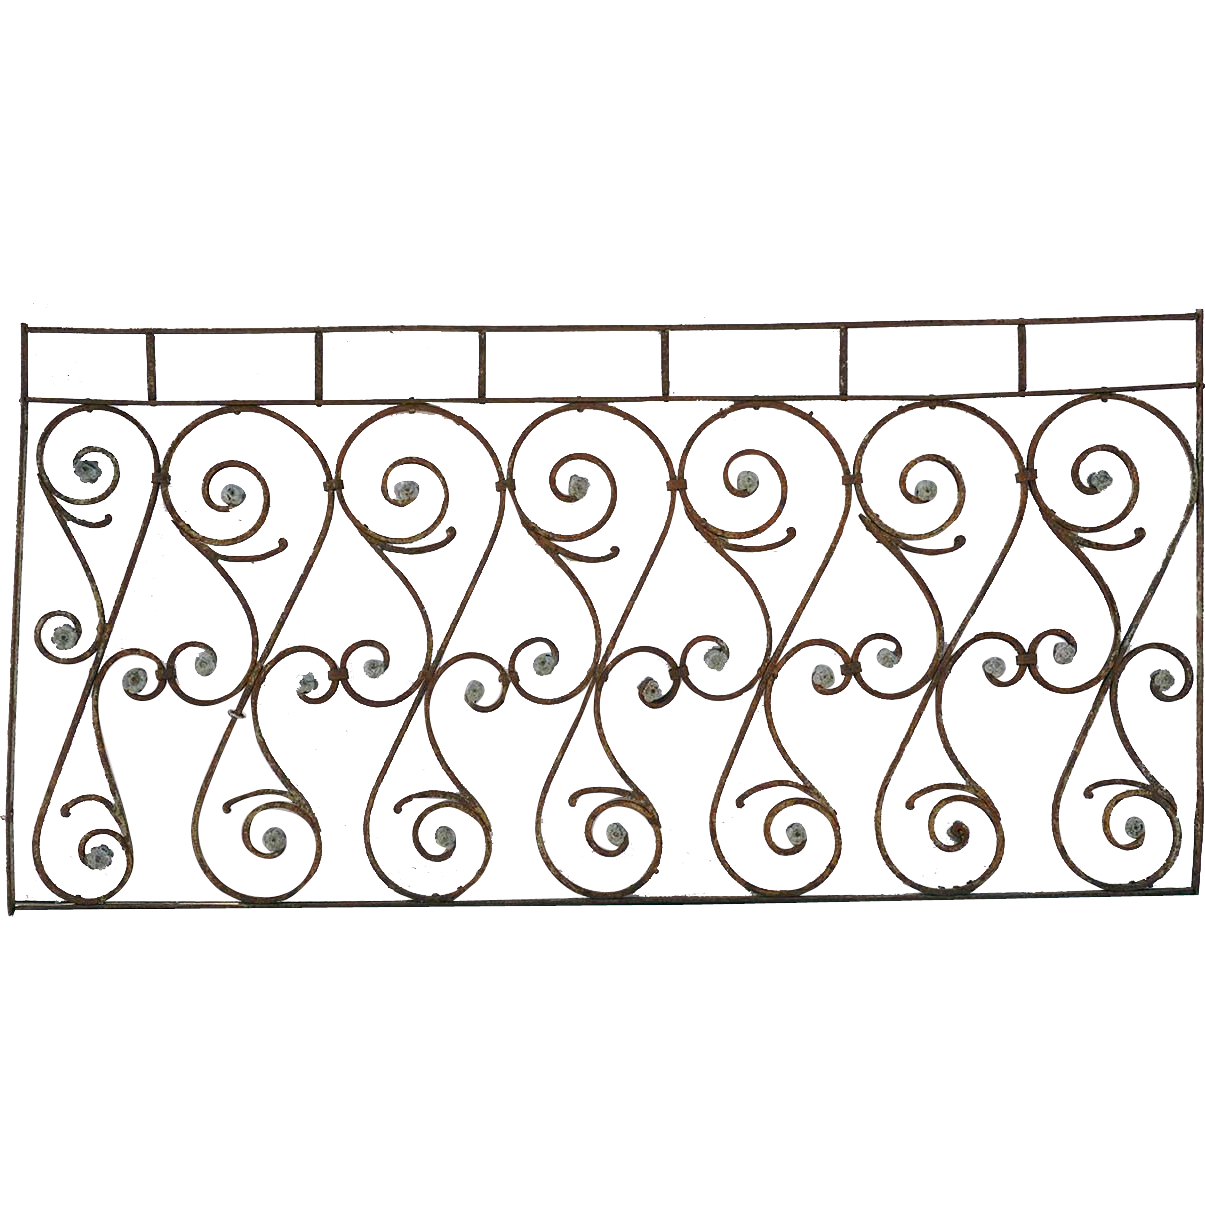 French 19th Century Wrought Iron Balcony Railing from